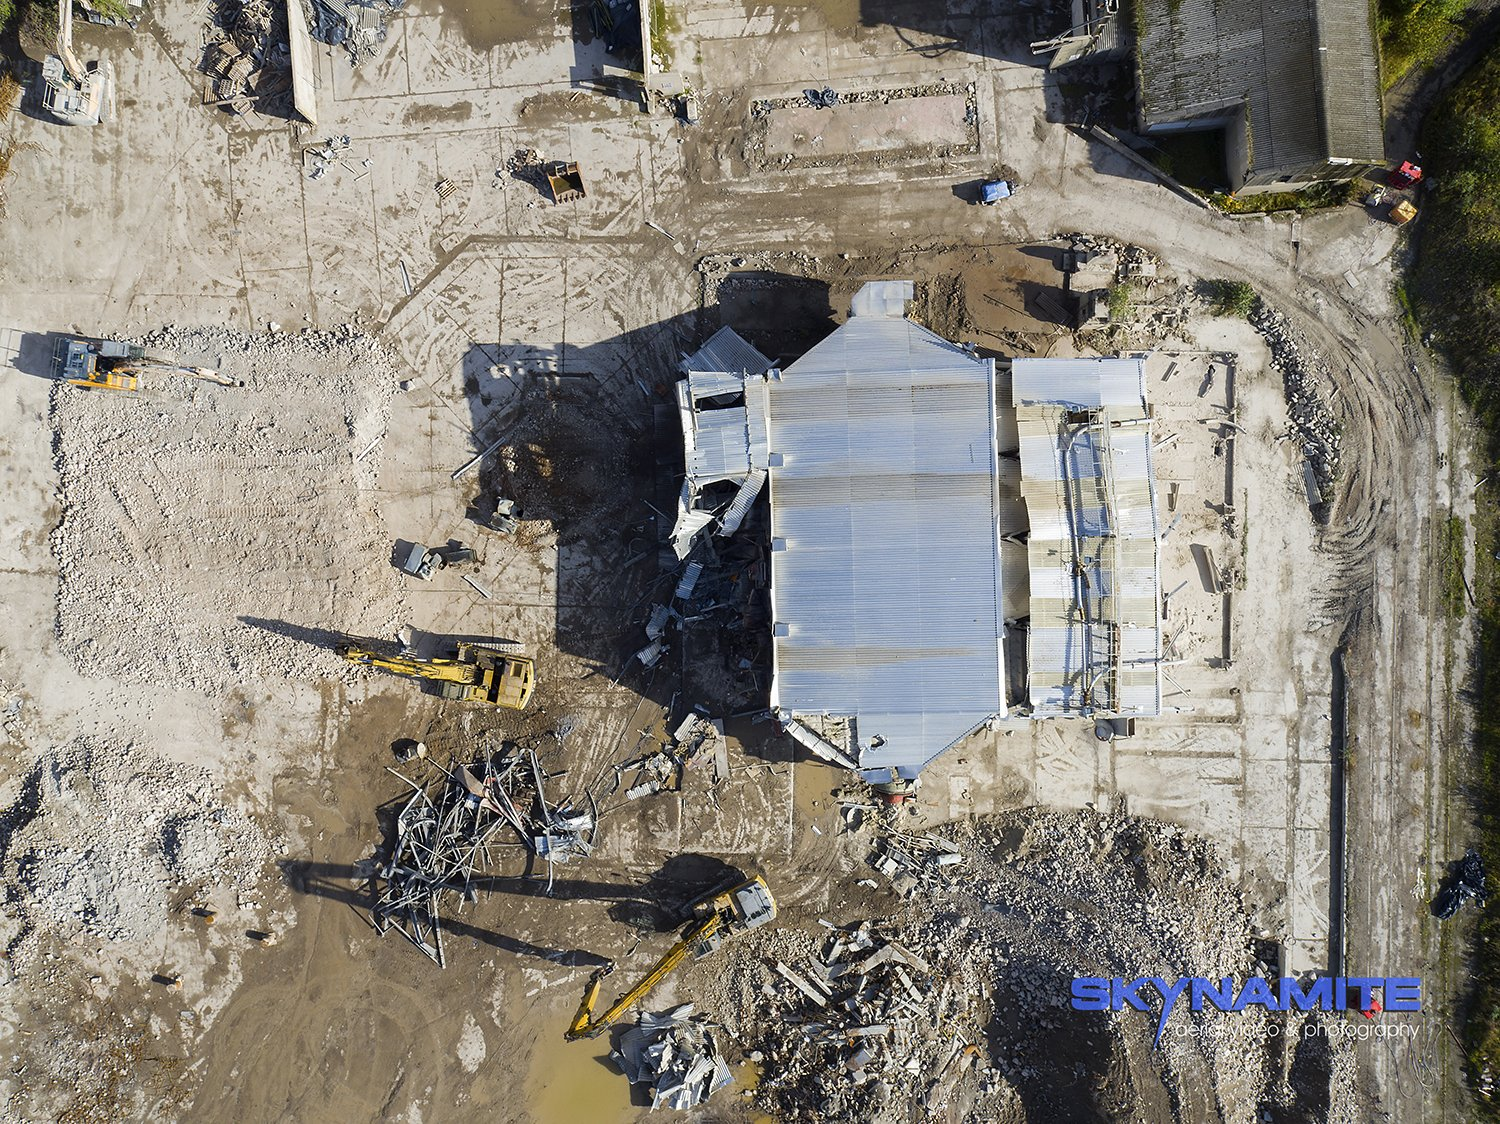 Aerial demolition picture